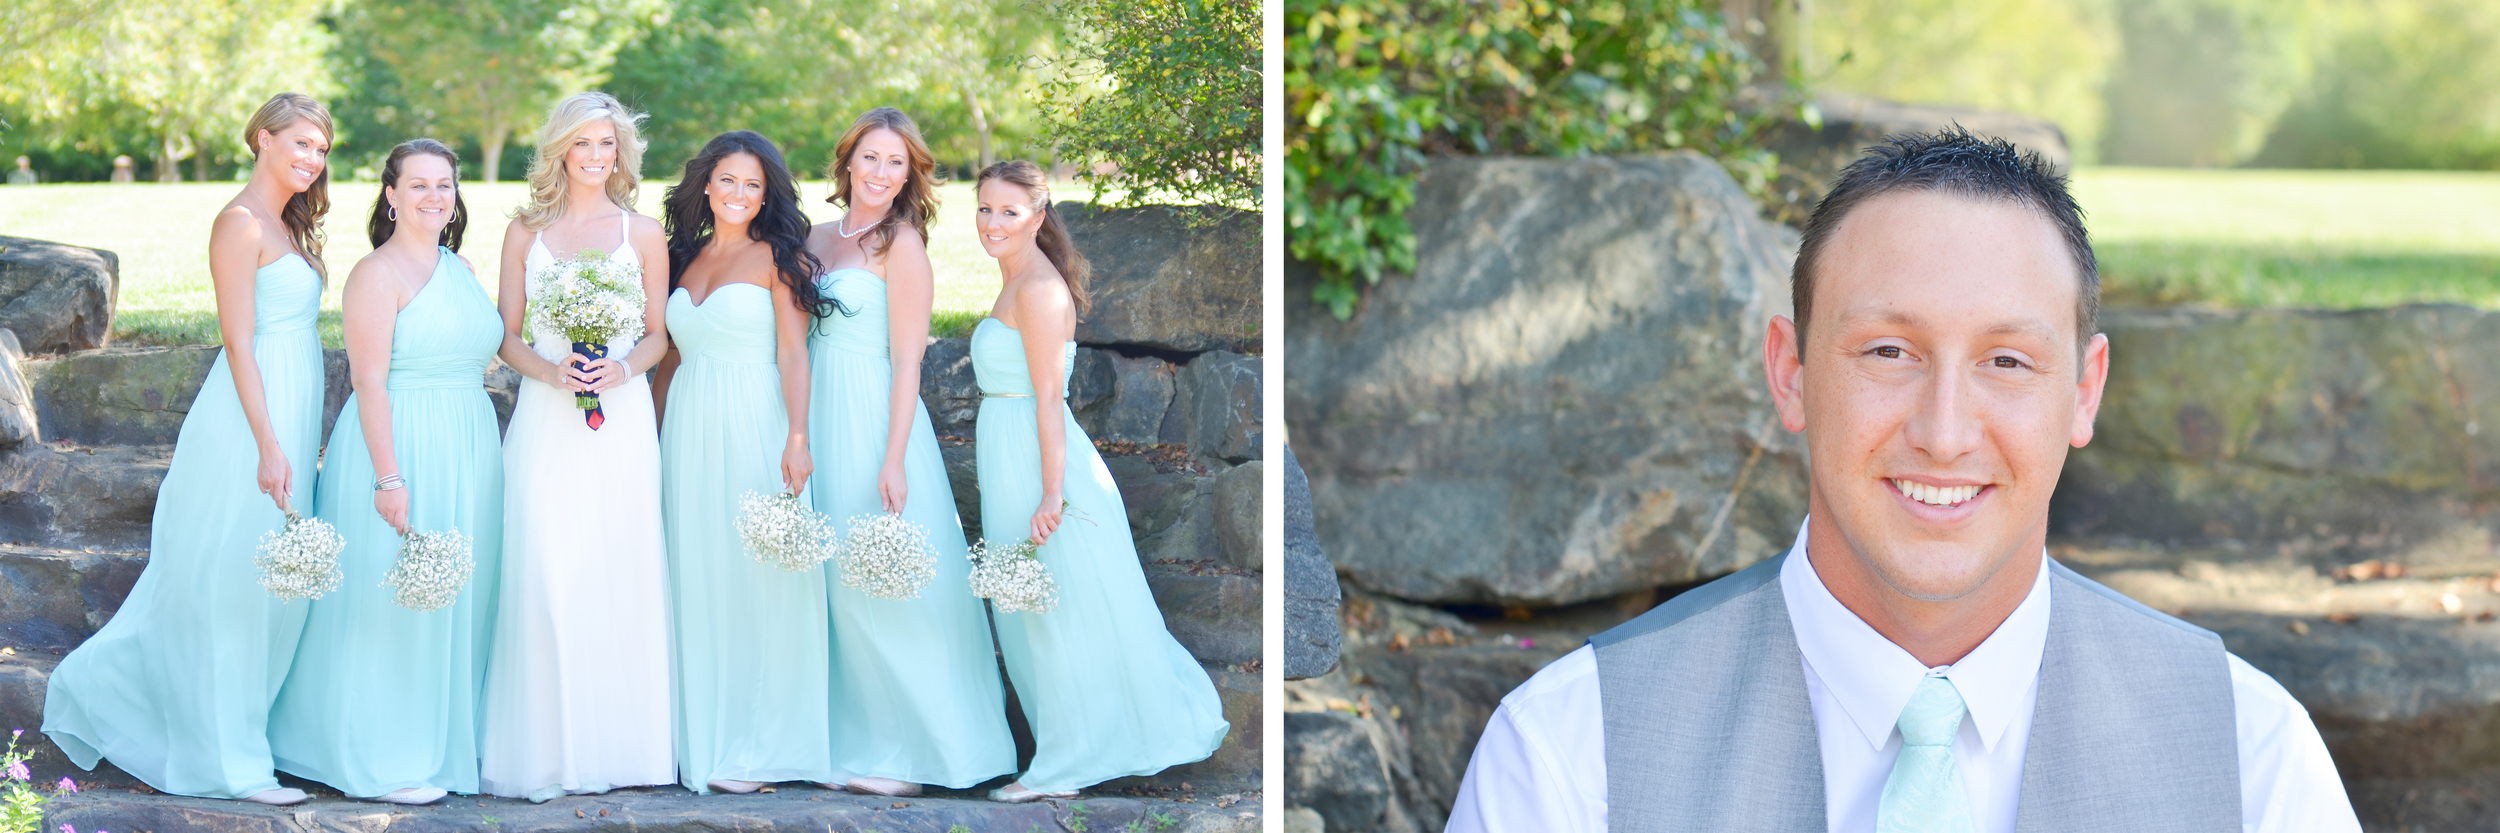 The beautiful belles and the handsome groom.